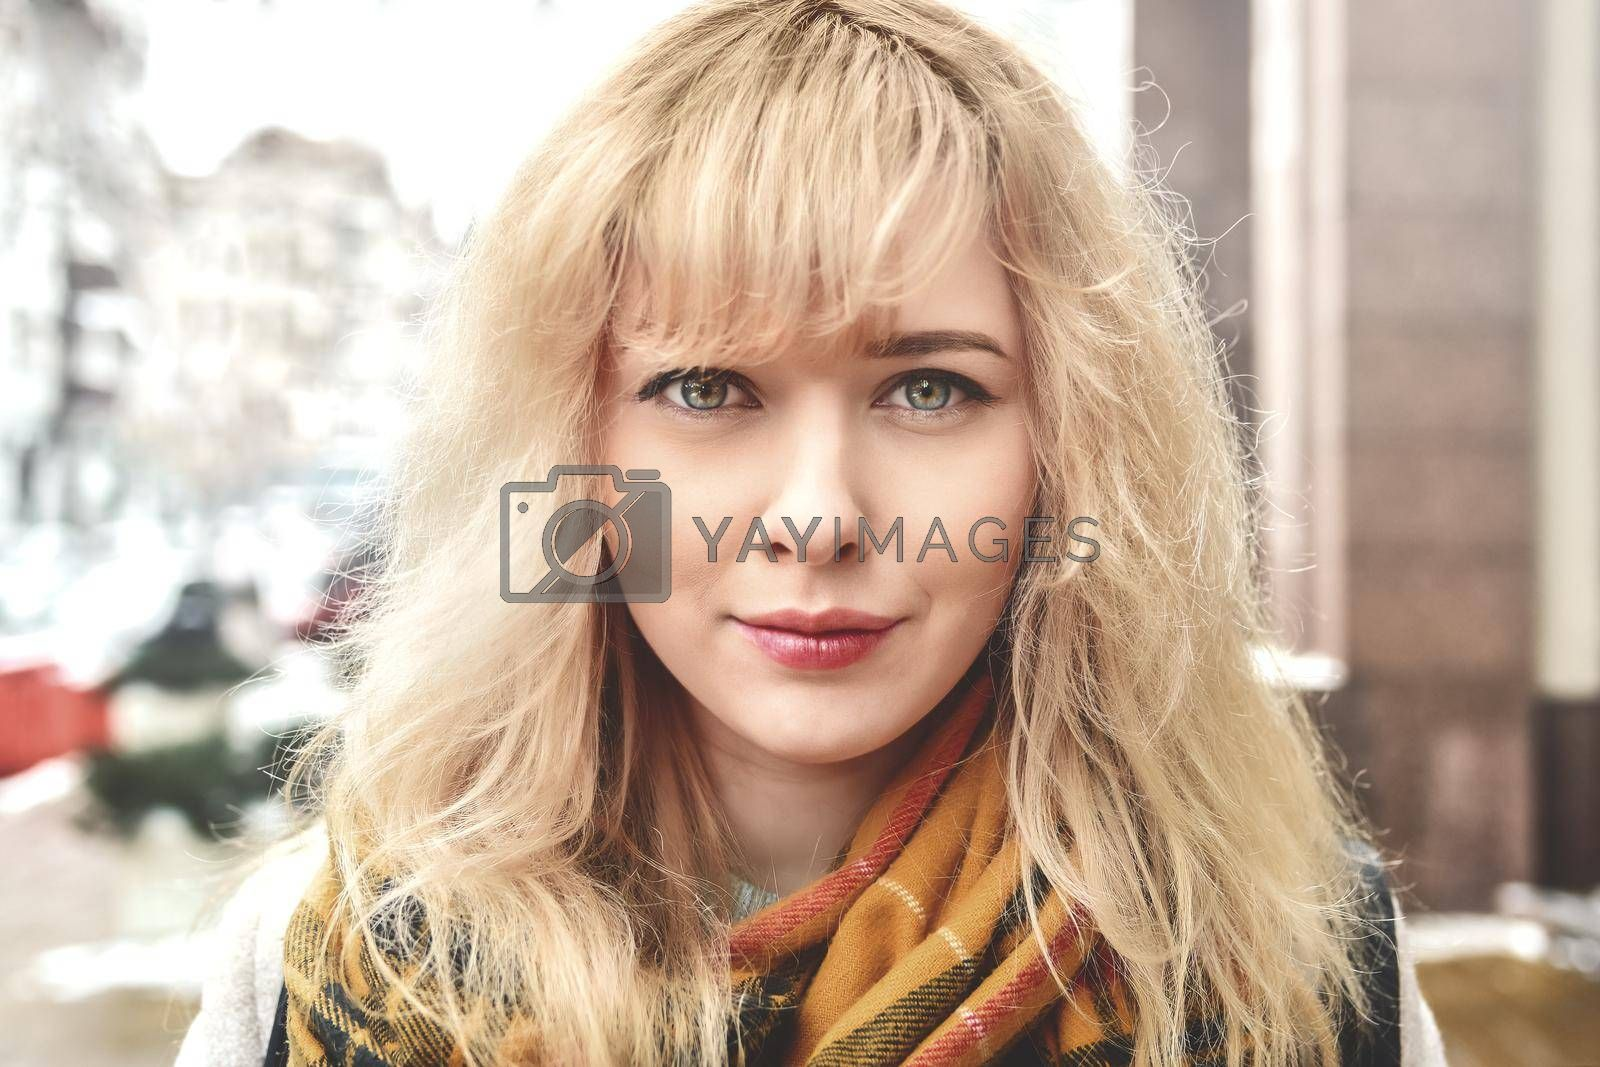 Urban portrait of a beautiful smiling Caucasian girl with blond curly hair looking at the camera